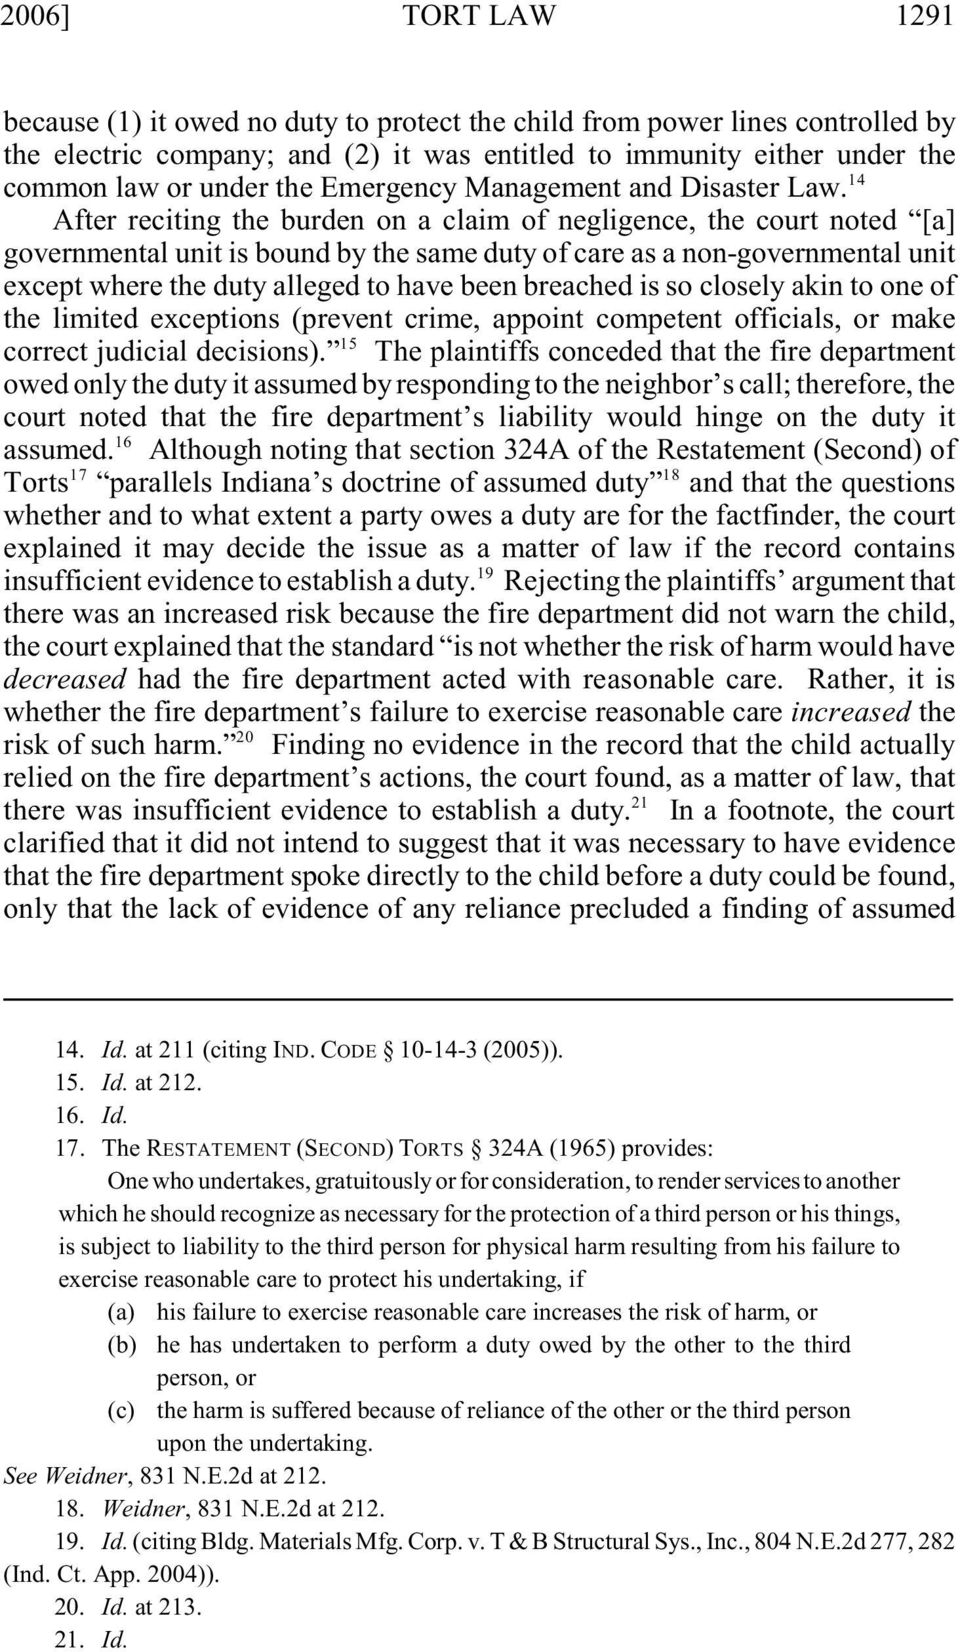 14 After reciting the burden on a claim of negligence, the court noted [a] governmental unit is bound by the same duty of care as a non-governmental unit except where the duty alleged to have been